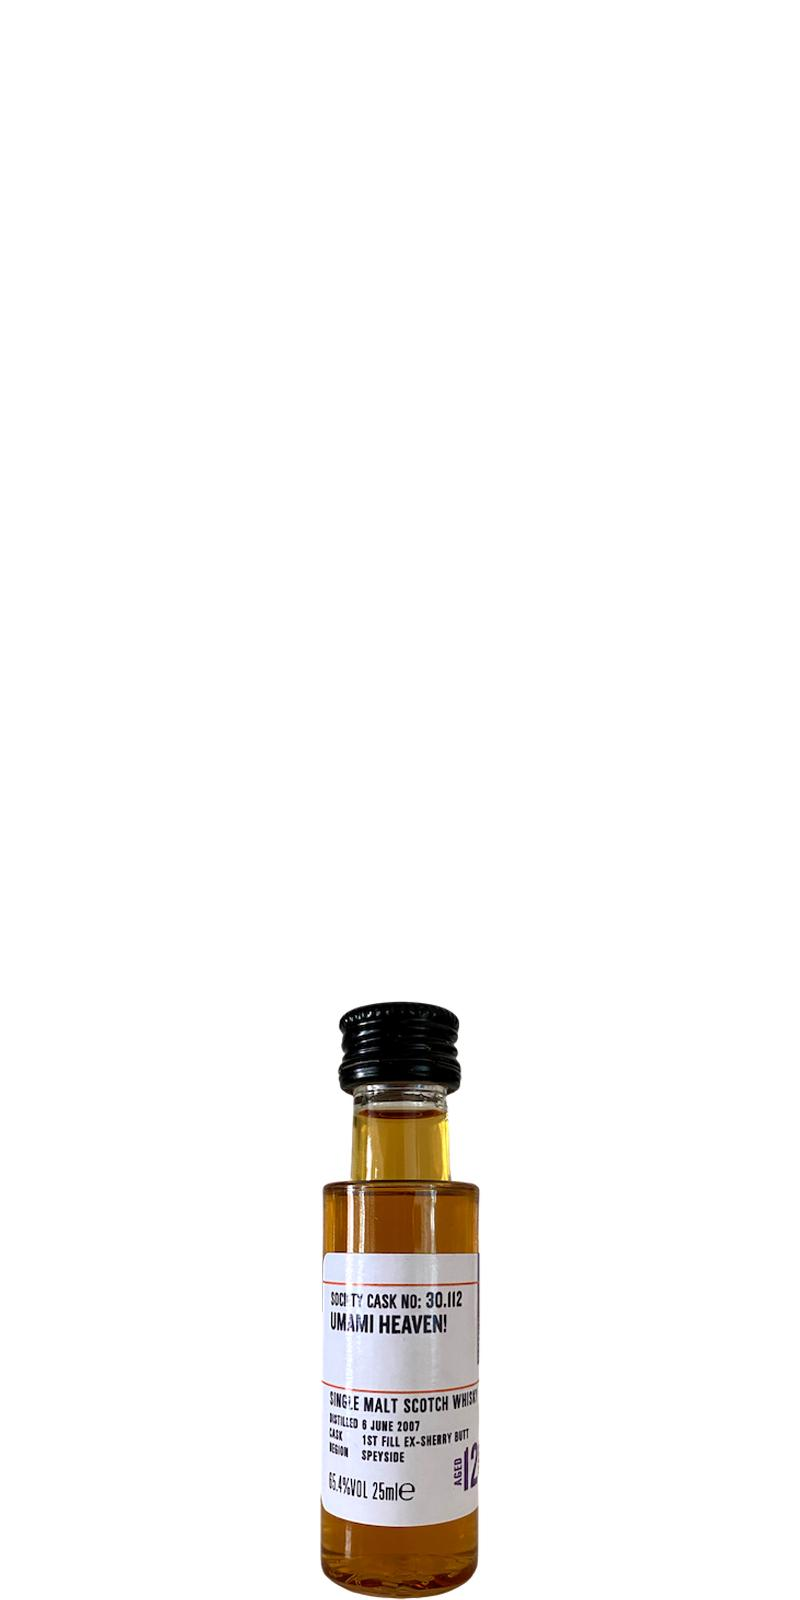 Glenrothes 2007 SMWS 30.112